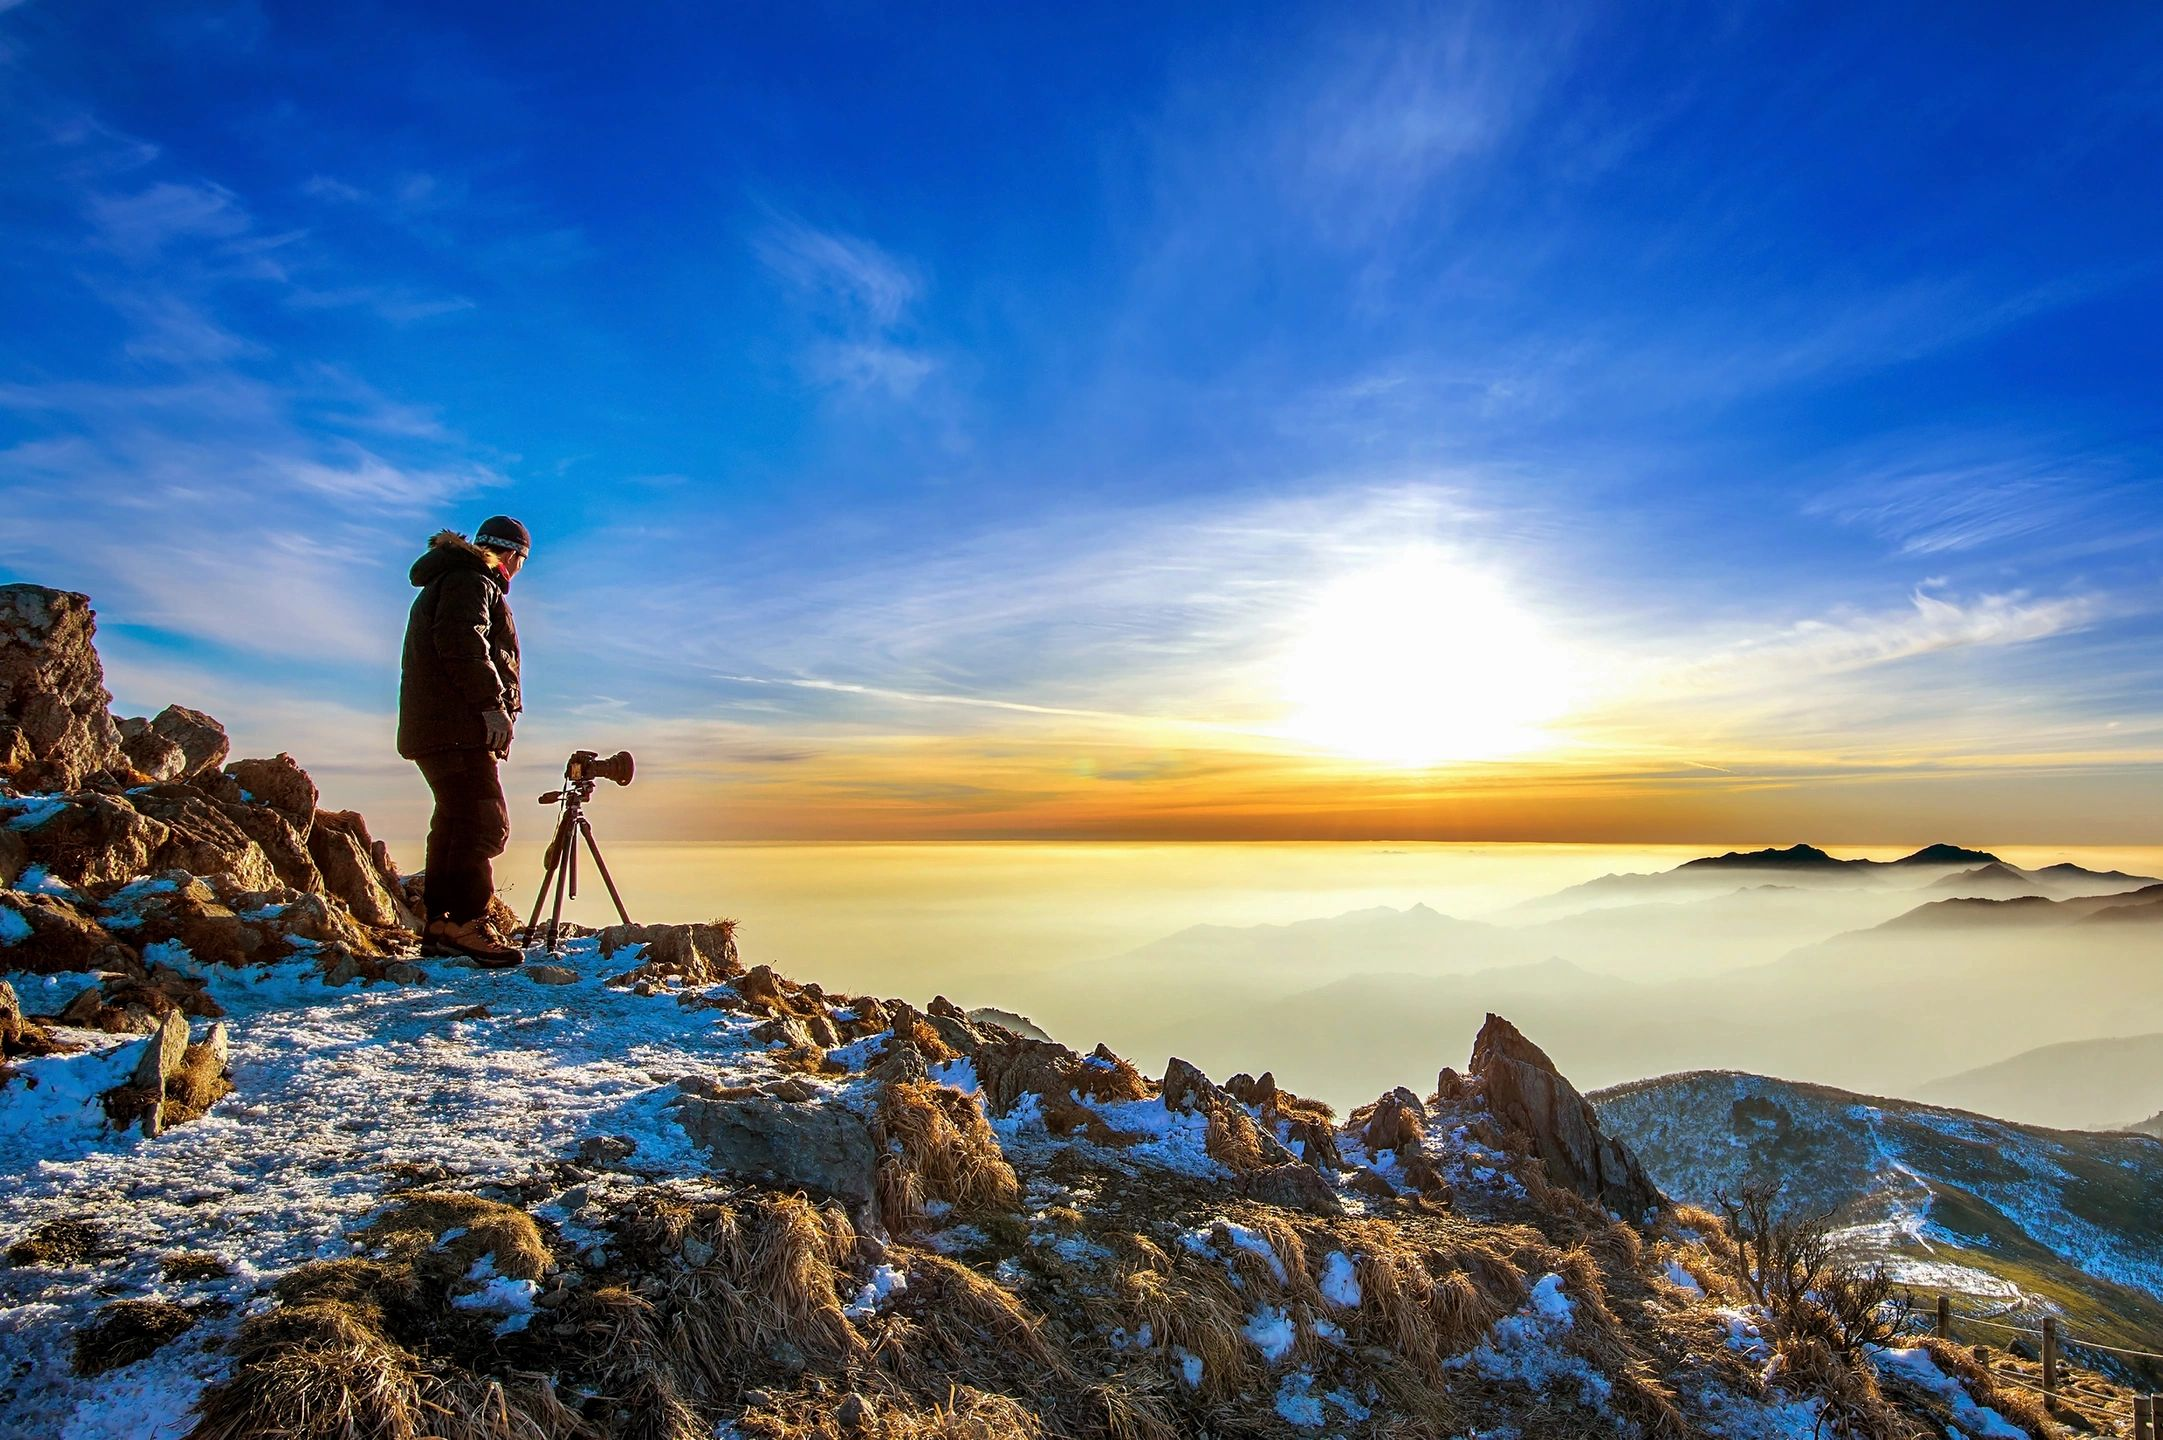 Man with tripod camera on top of a mountain looking out into infinity